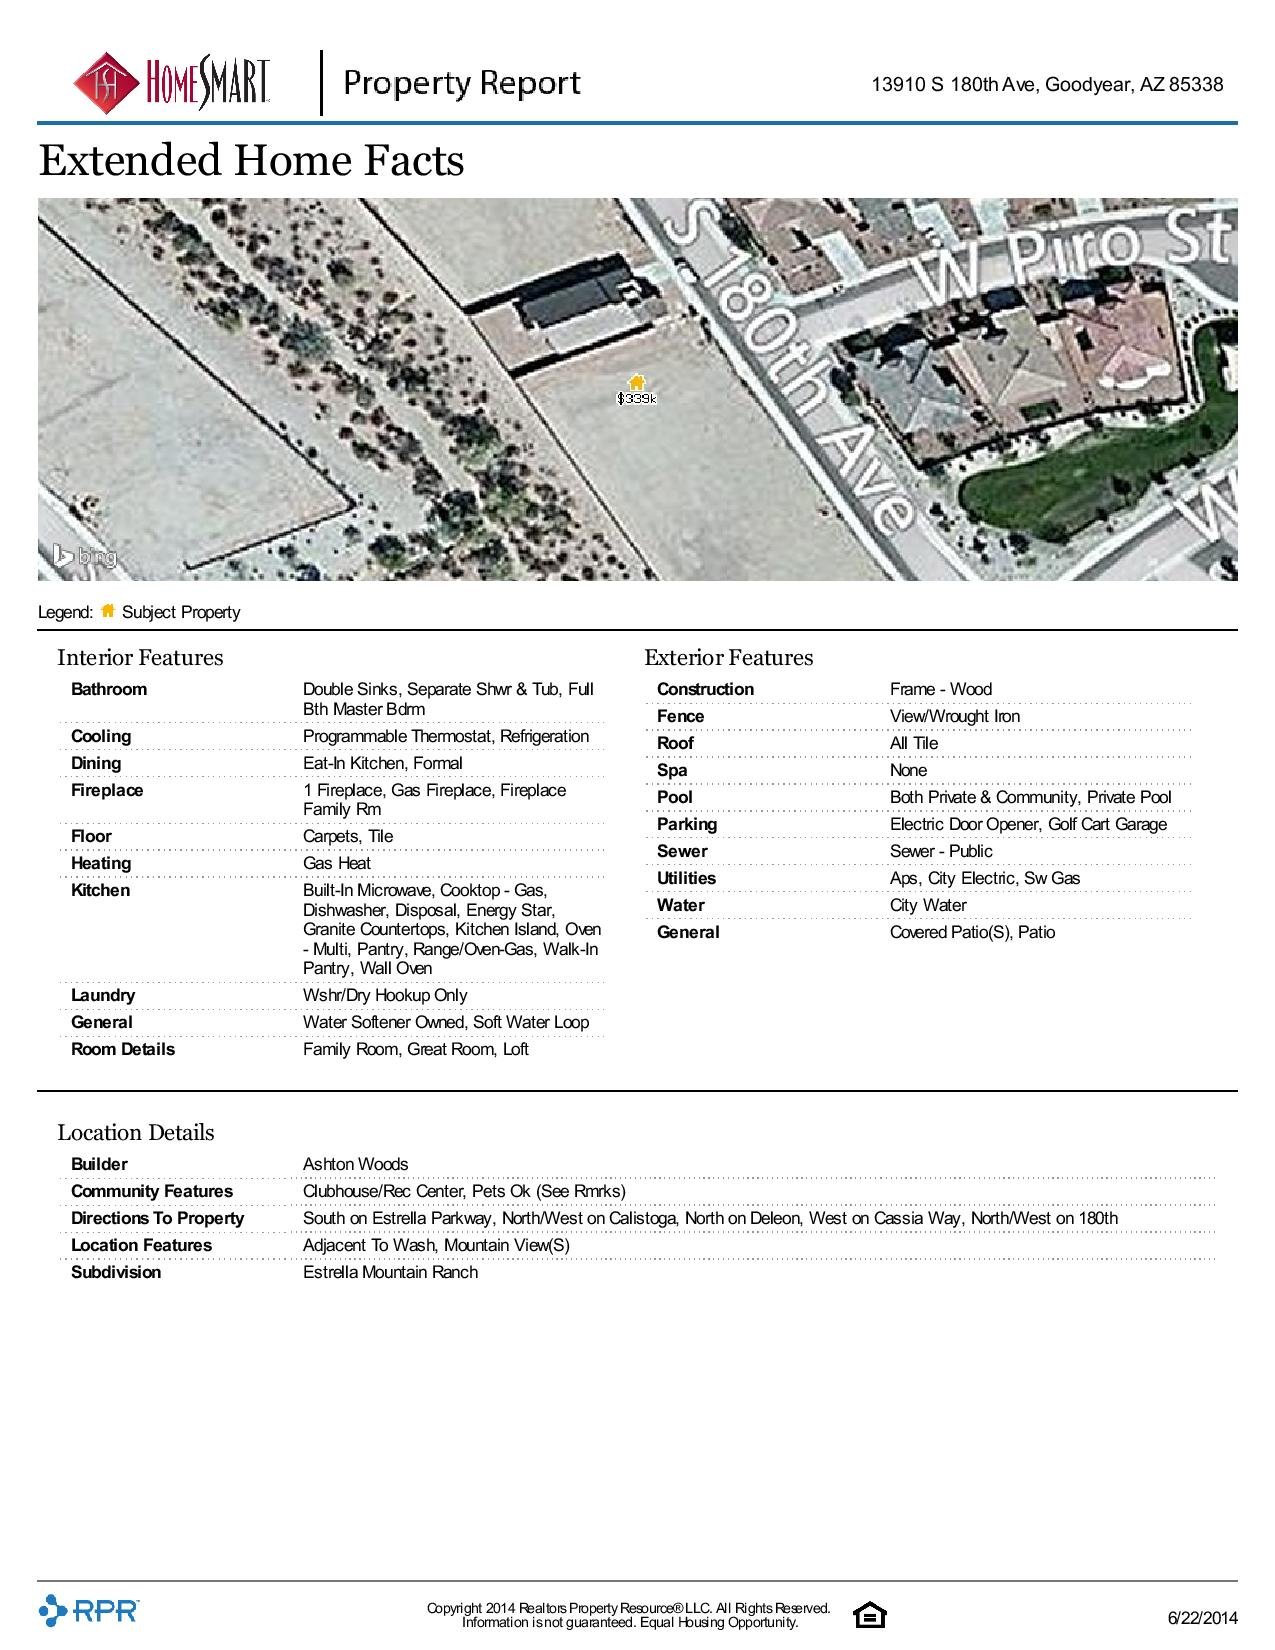 13910-S-180th-Ave-Goodyear-AZ-85338-page-004